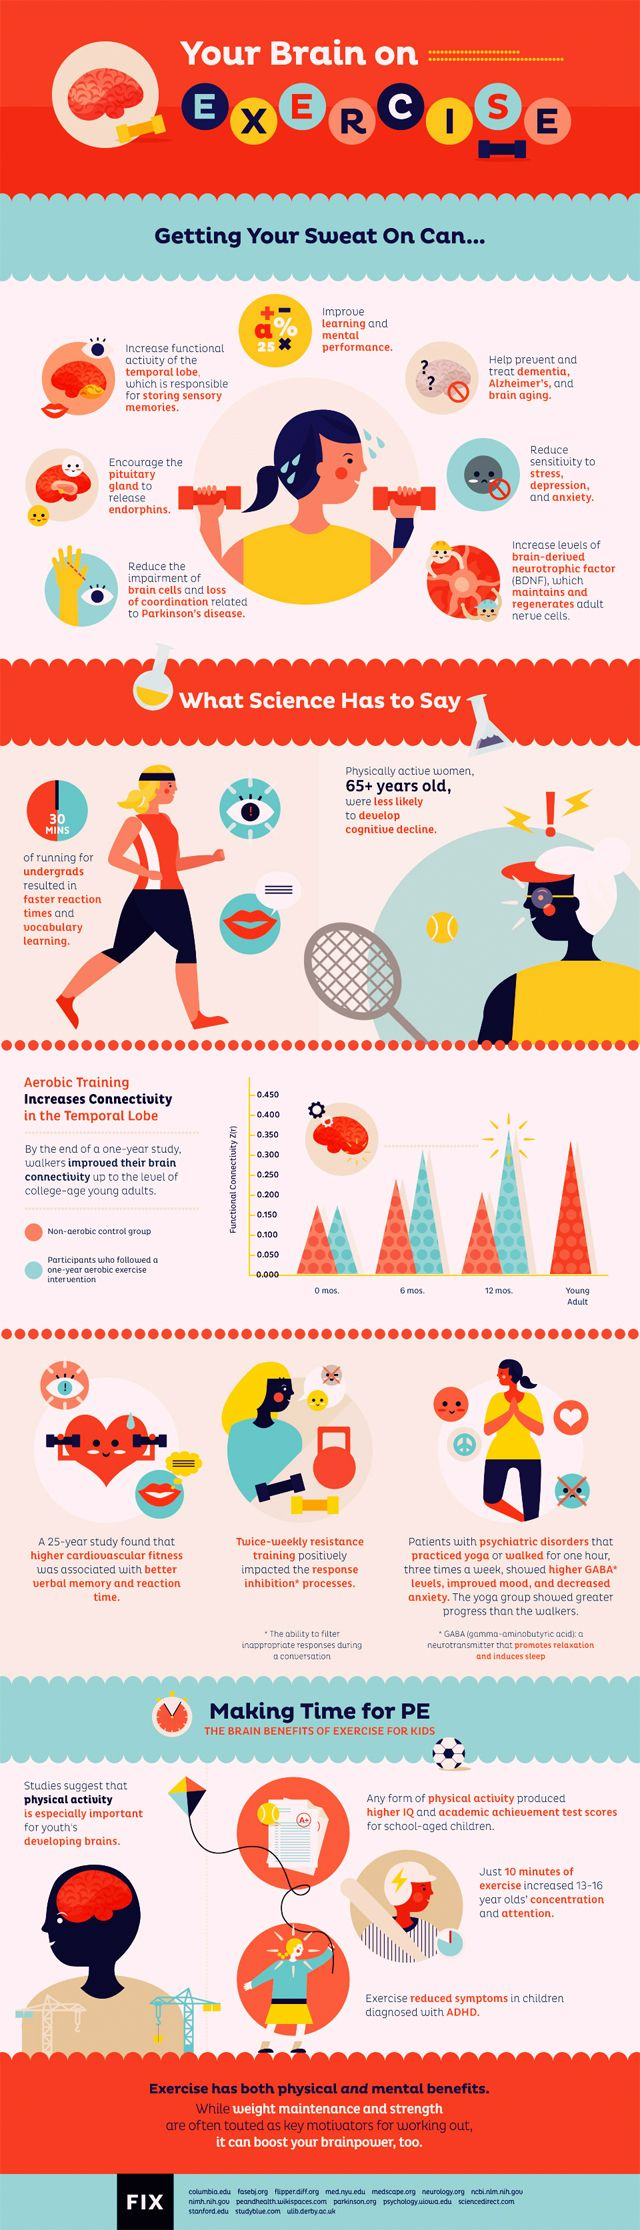 Your Brain on Exercise | Visual.ly